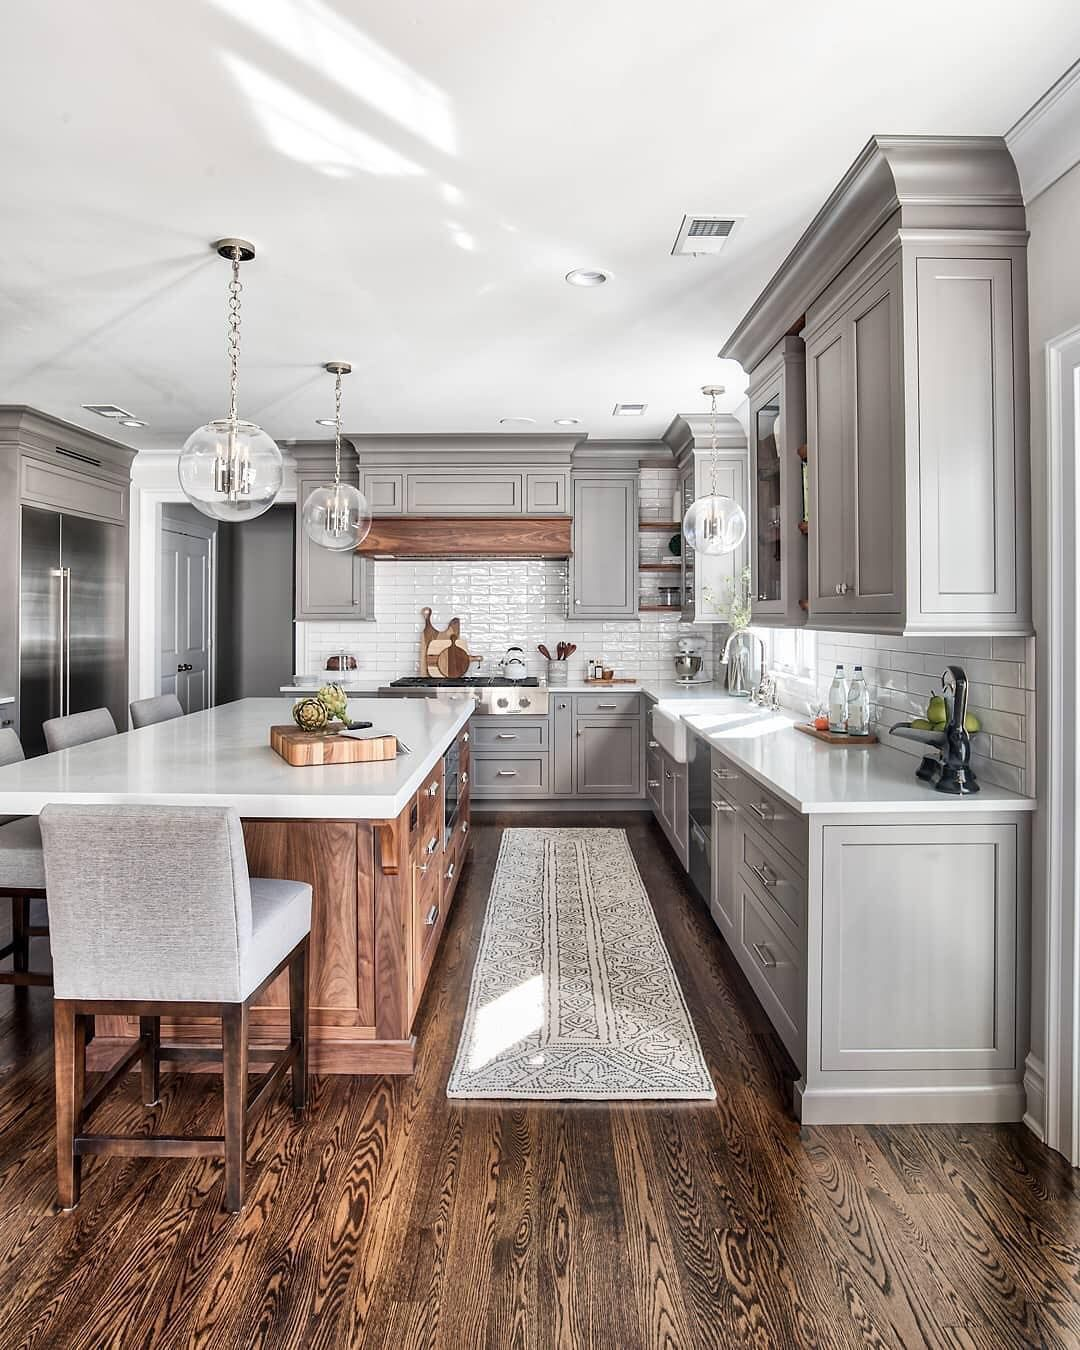 remarkable kitchen designs take  look at these ten modern  found over homebunch some great new designers to check out also rh ar pinterest